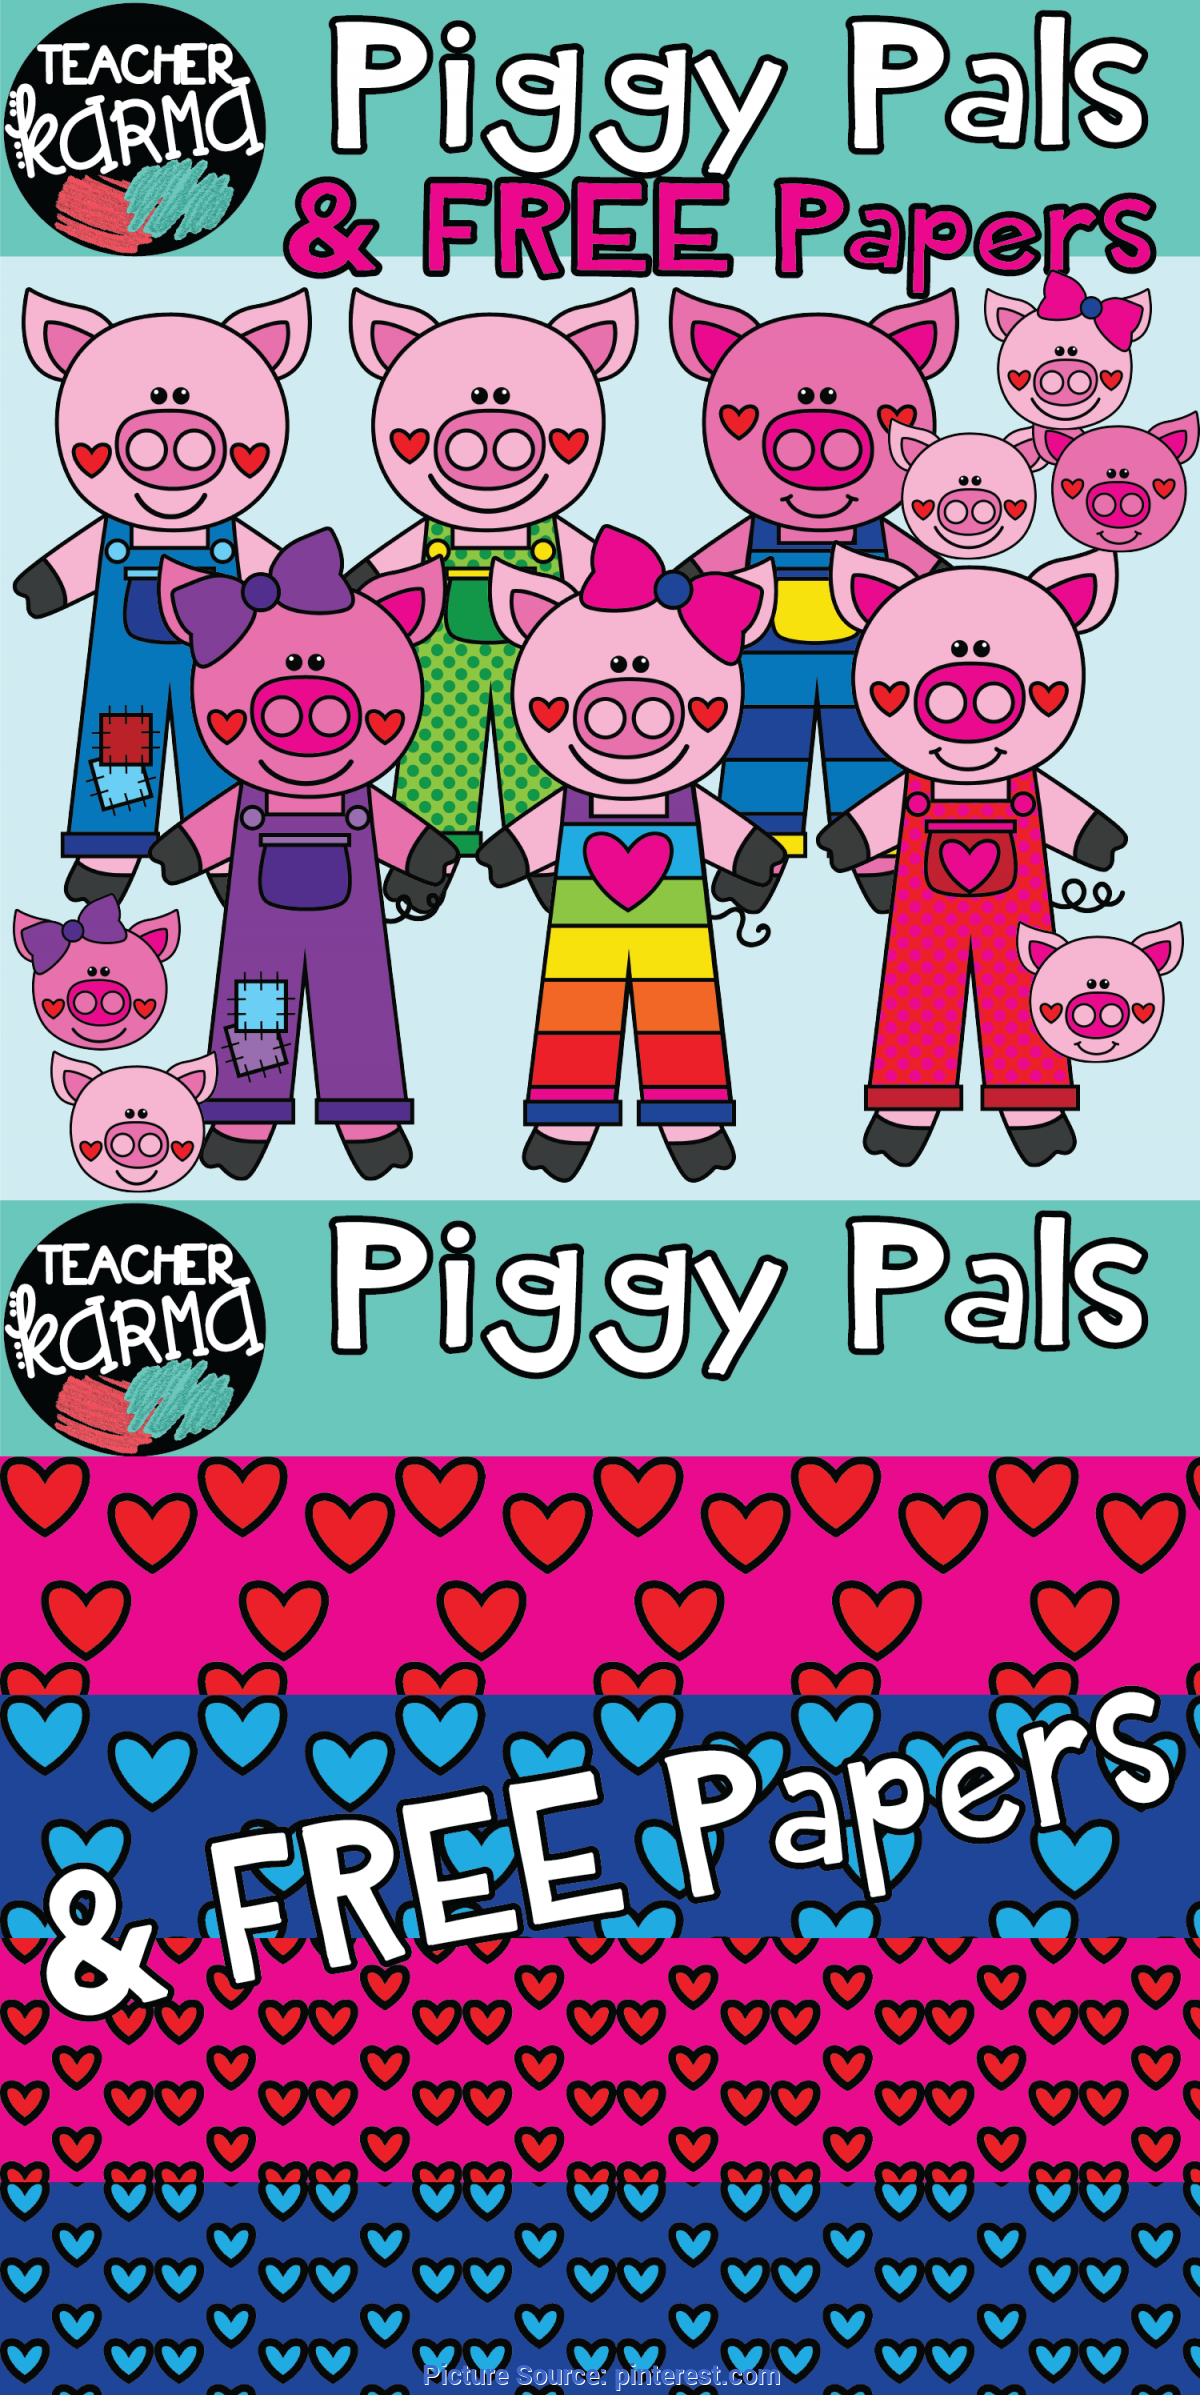 Regular Free Classroom Resources For Teachers Piggy Pals: Pig Clipart With Free Digital Papers | Classroo